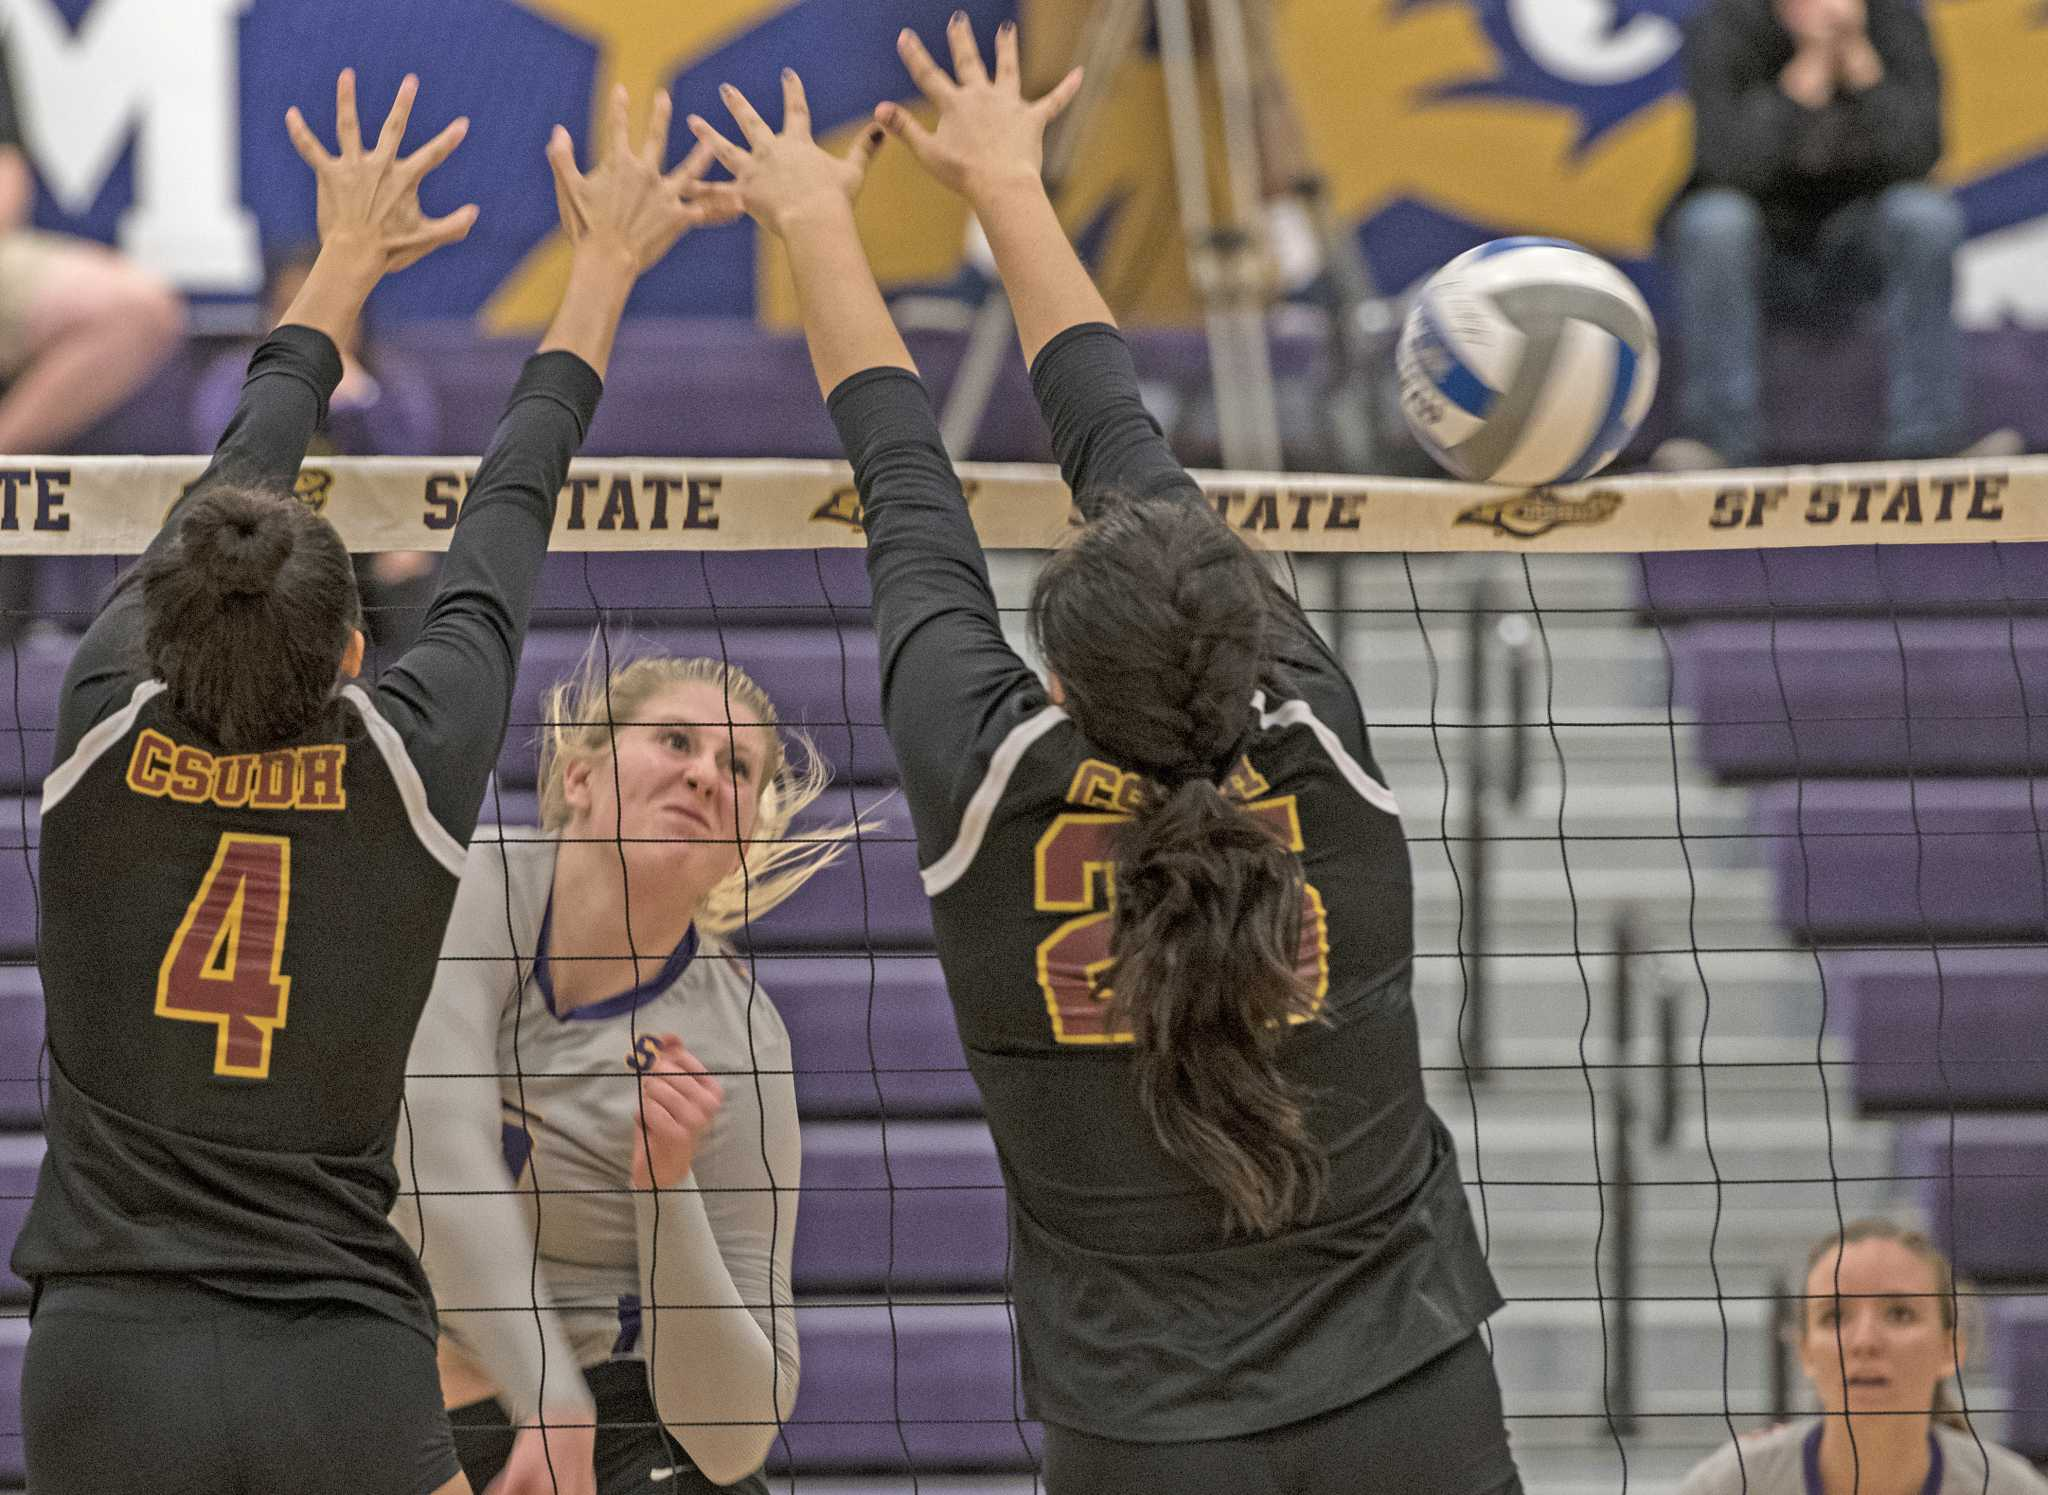 SF State Gators' freshman middle blocker Abby Griffith spikes the ball during their loss against Cal State Dominguez Hills at the Swamp on Friday, Sept. 30, 2016. The Gators fell to the Toros in the fifth set.